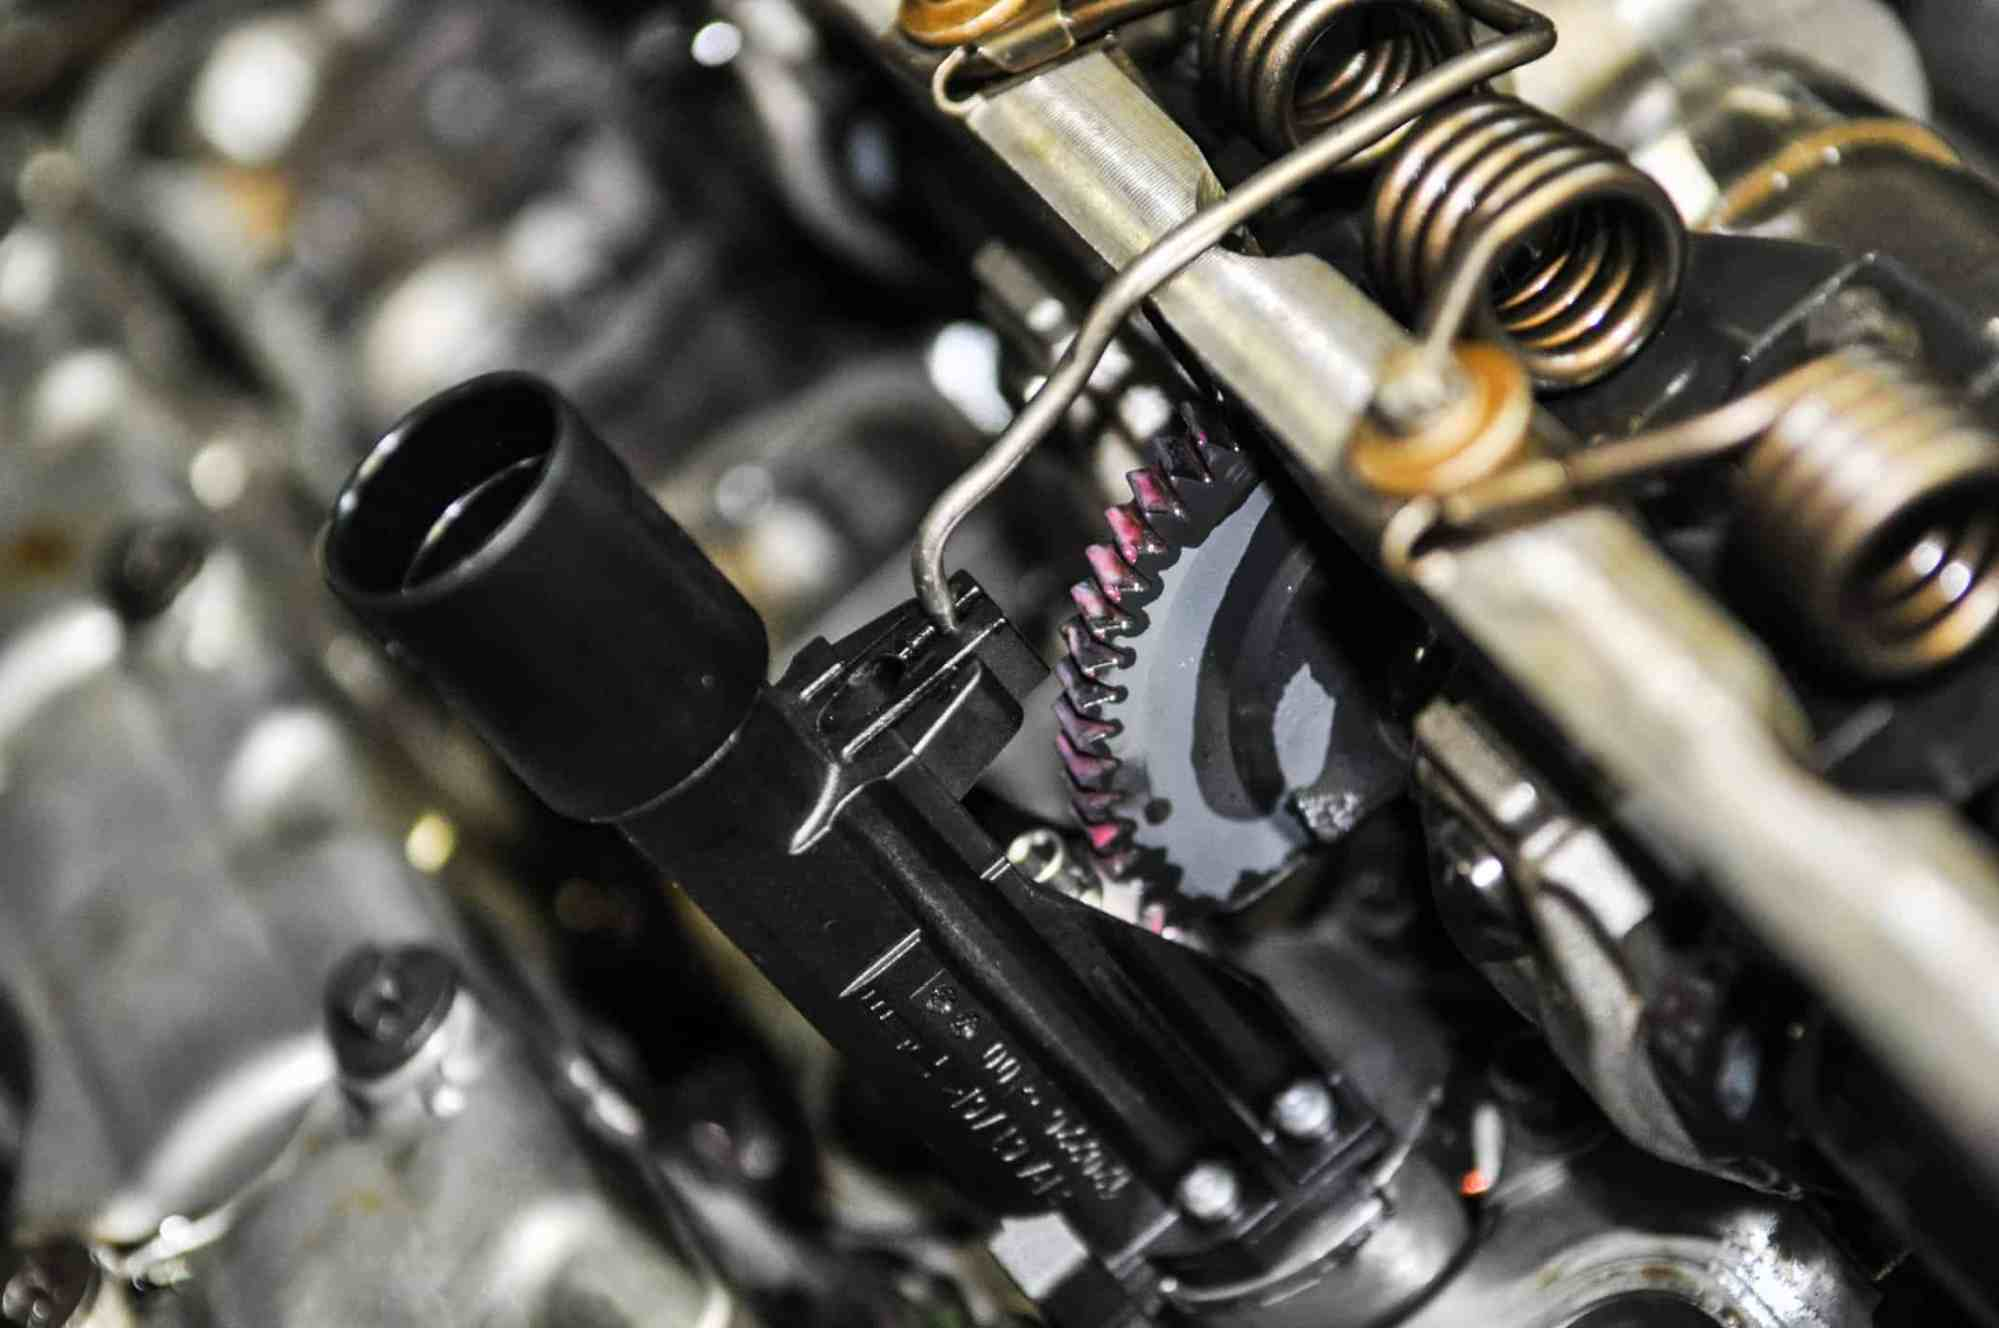 hight resolution of removing it requires the removal of the valve cover special bmw tooling is required to release tension from the shaft springs and levers